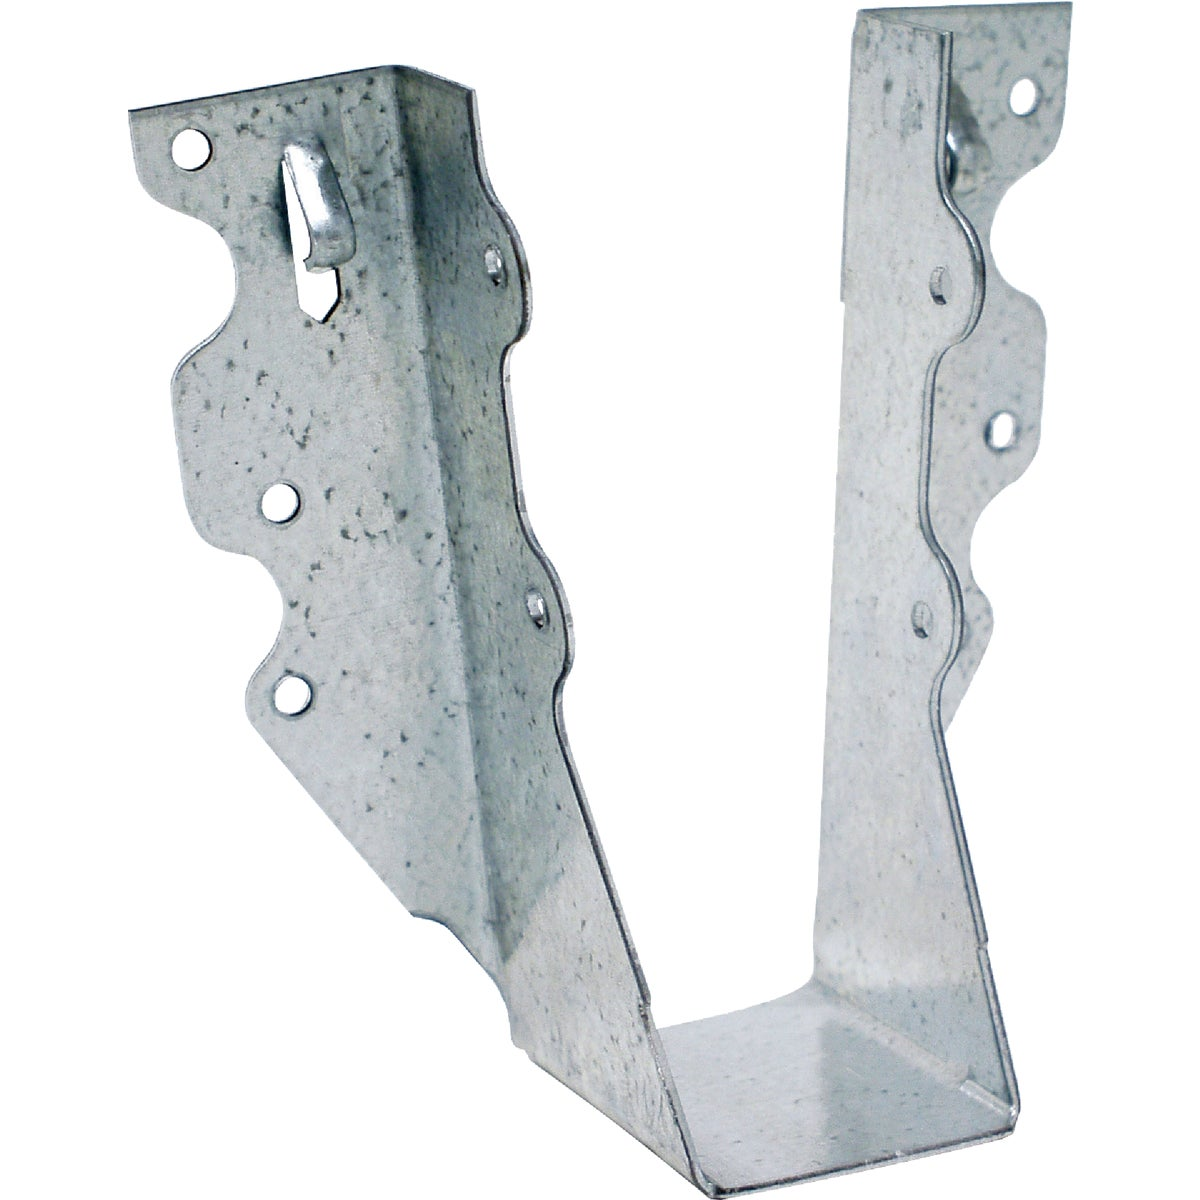 2X6 JOIST HANGER - U26 by Simpson Strong Tie